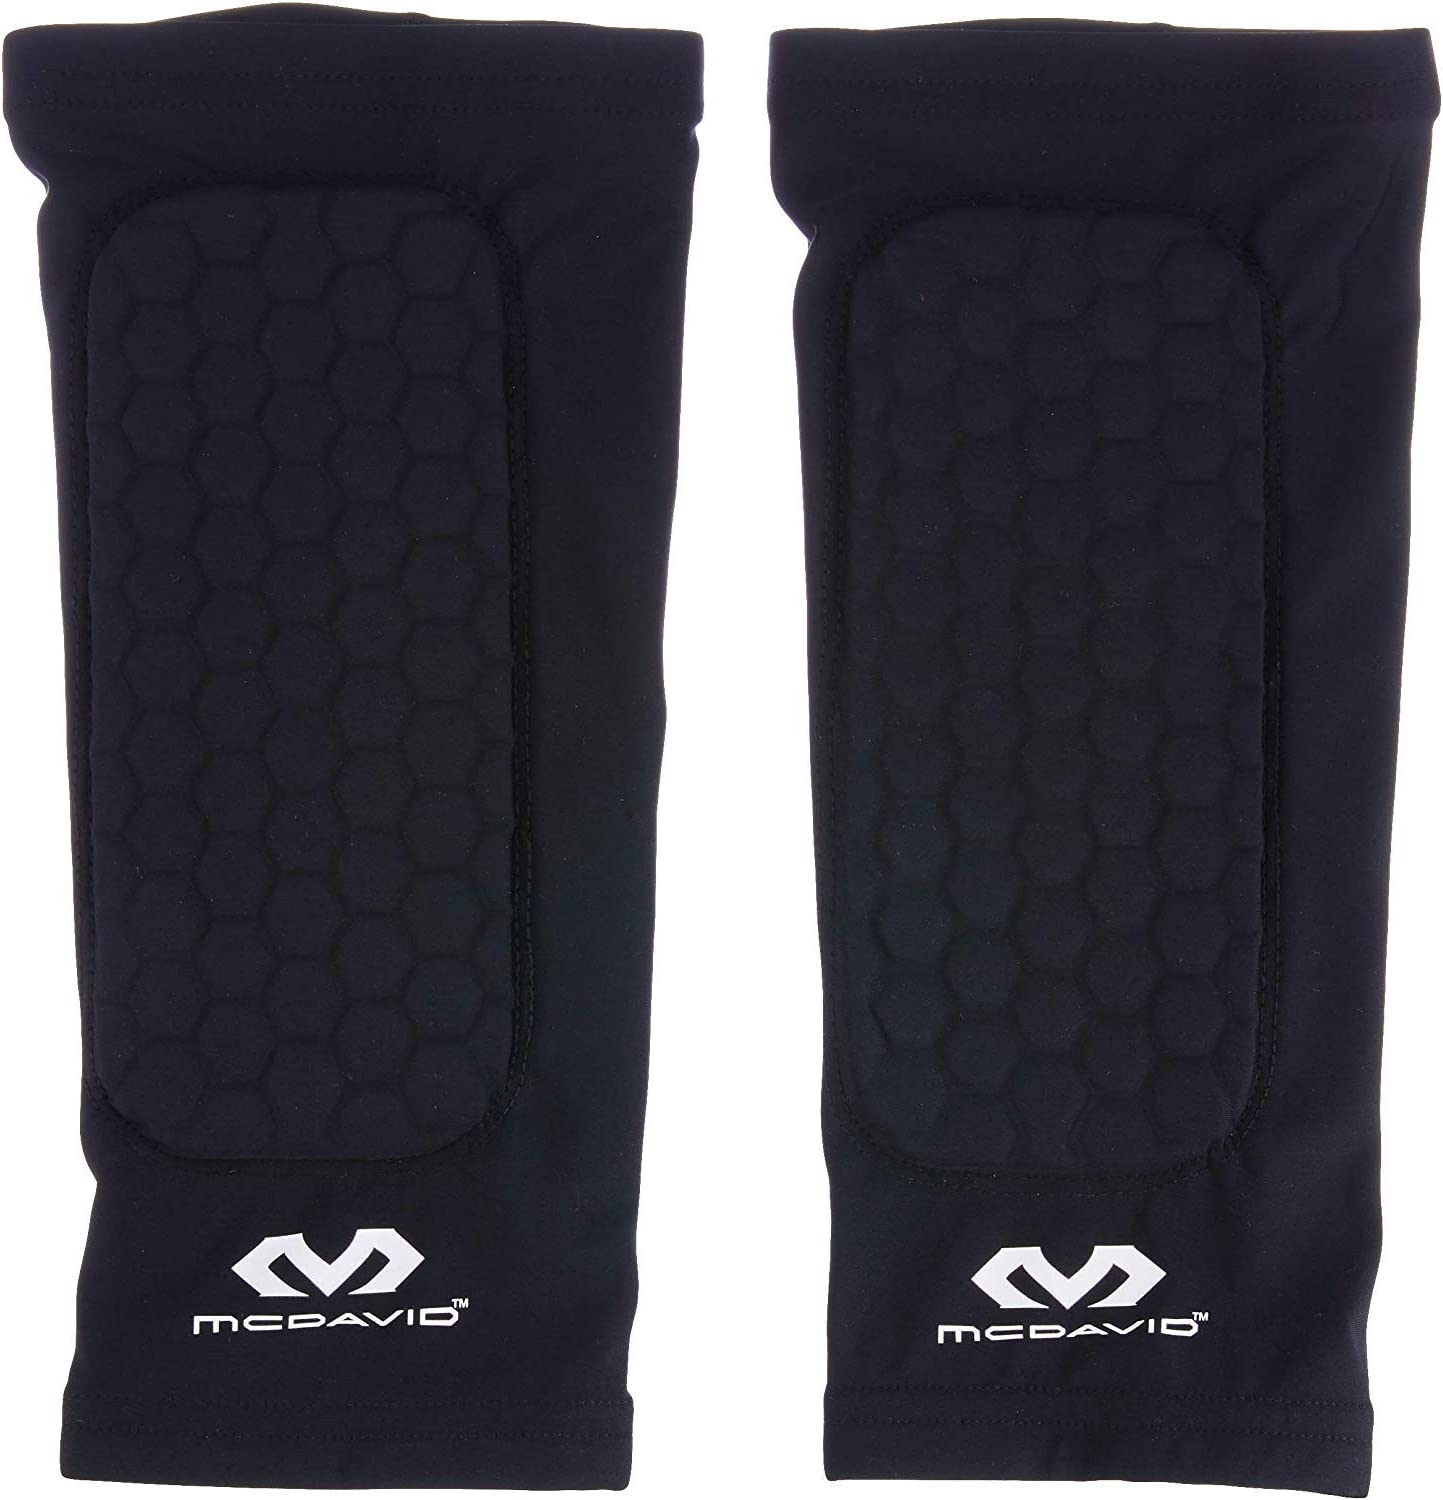 McDavid Forearm Guards with Padding for men and women Perfect for Rugby and other contact sports